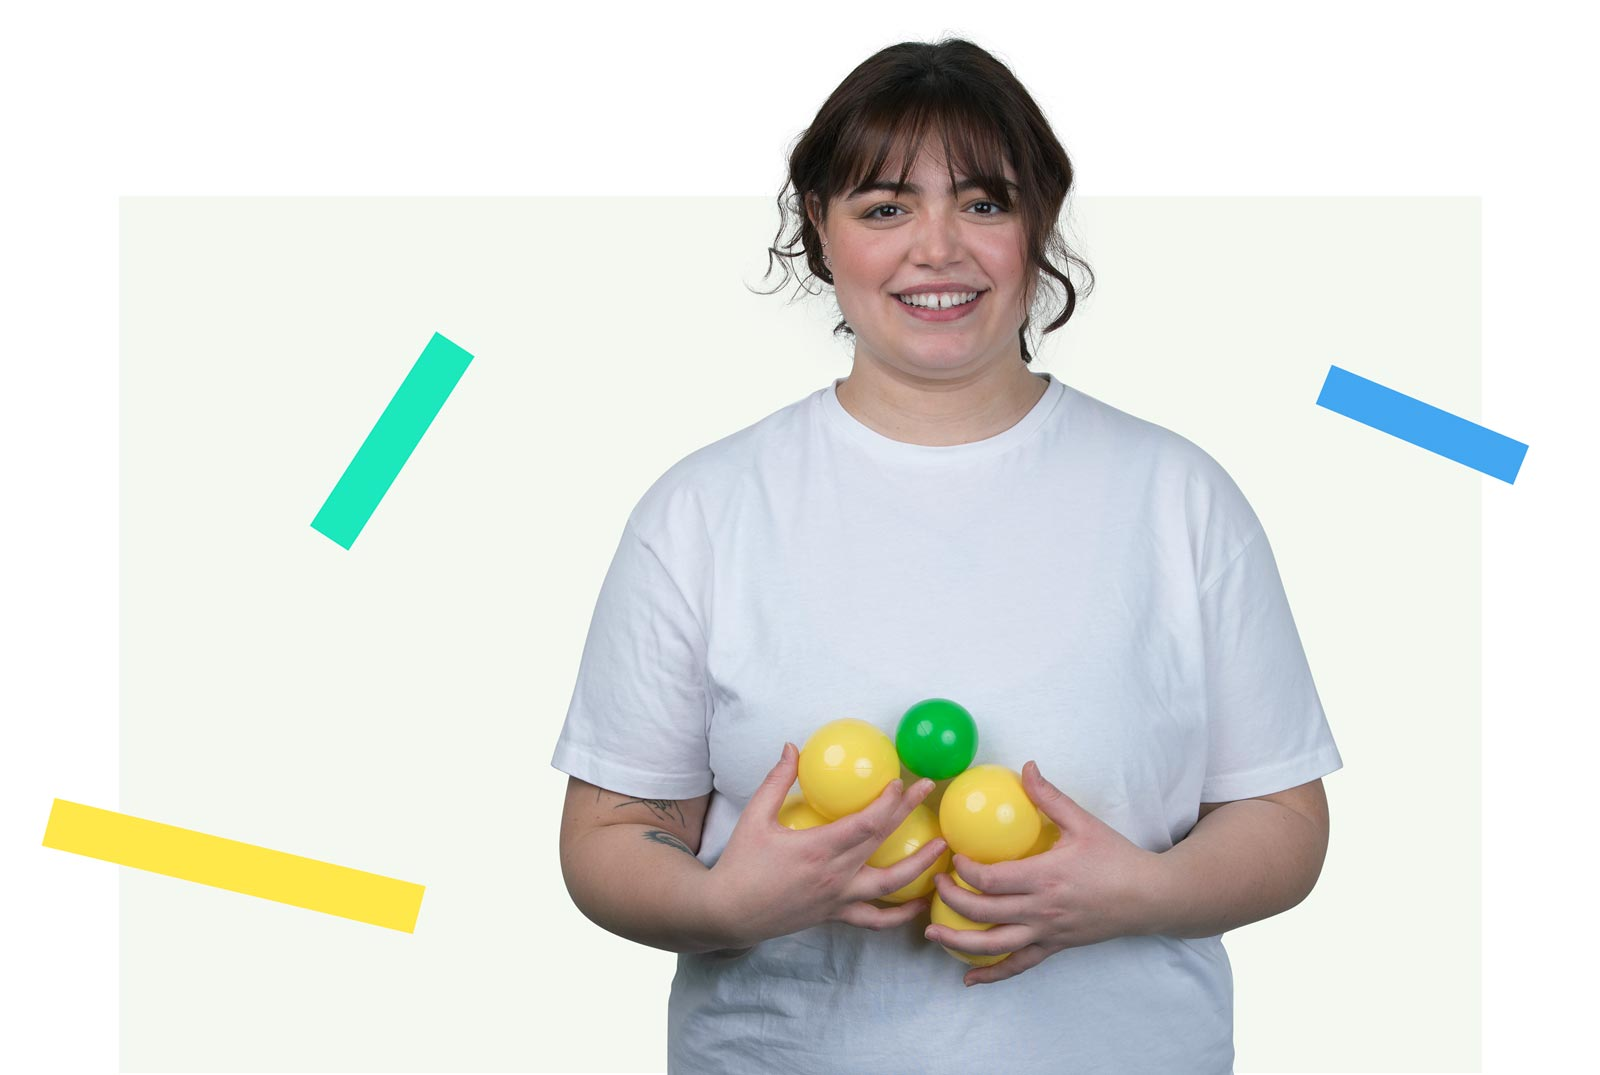 An image of a young brunette girl holding yellow and green balls and looking pleased.